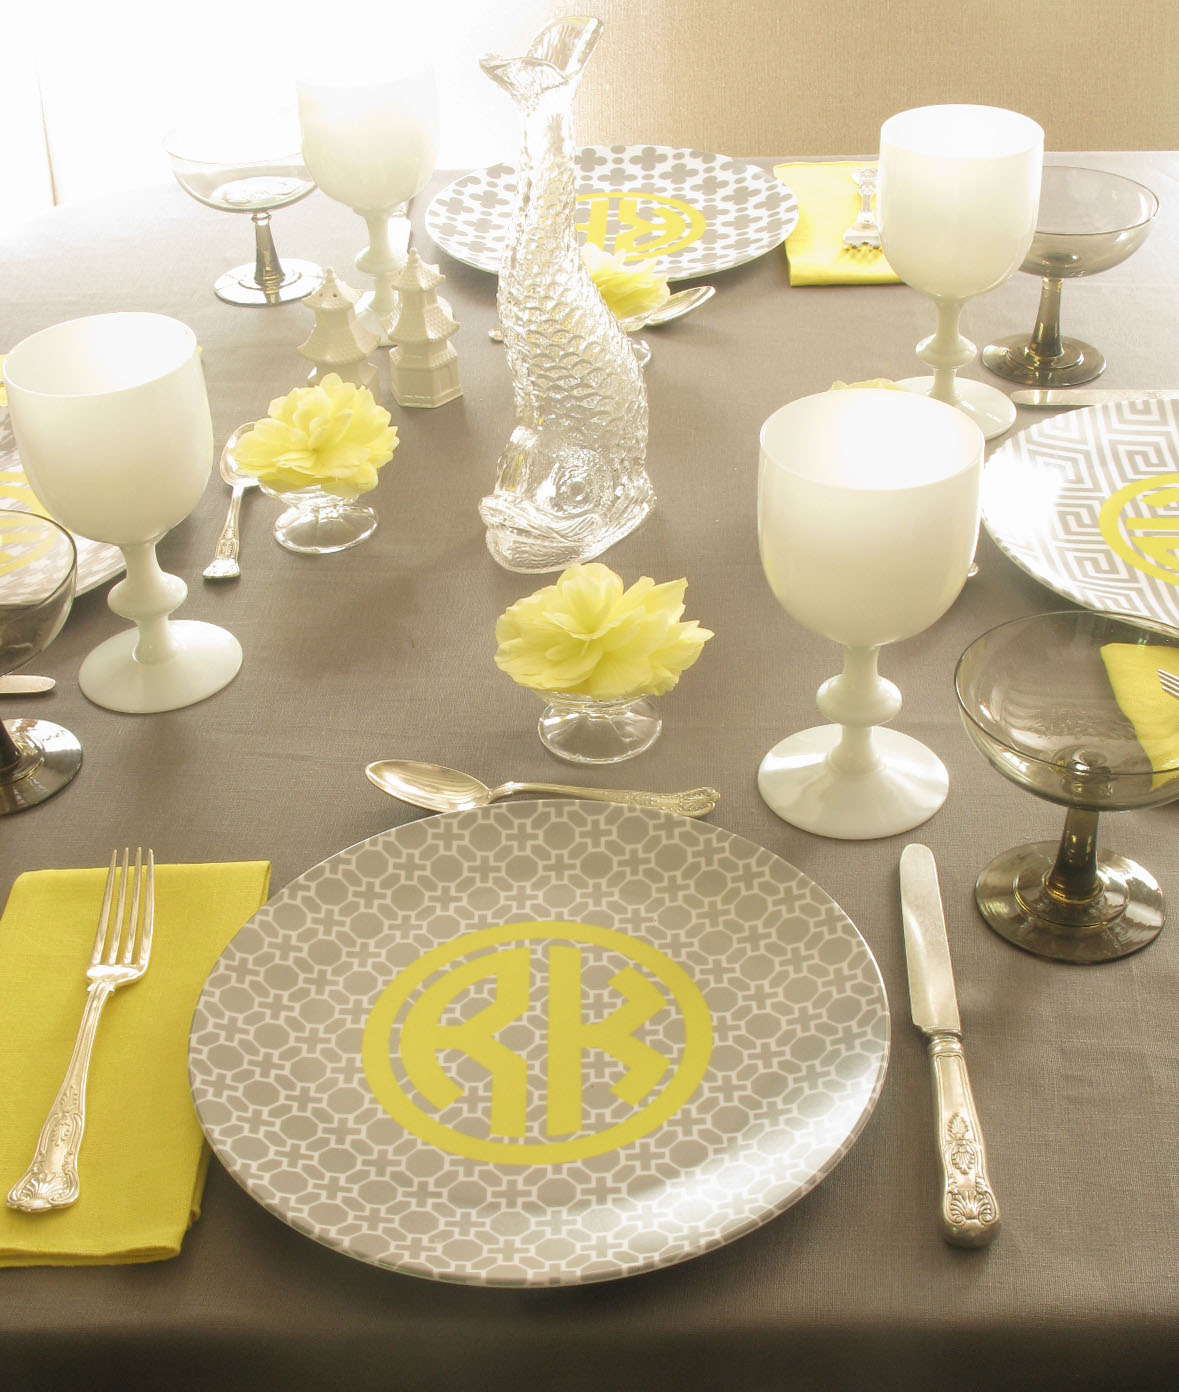 combining the kidfriendly appeal of plastic with the elegance of fine china la plates has so many eyecatching youu0027re bound to fine one that